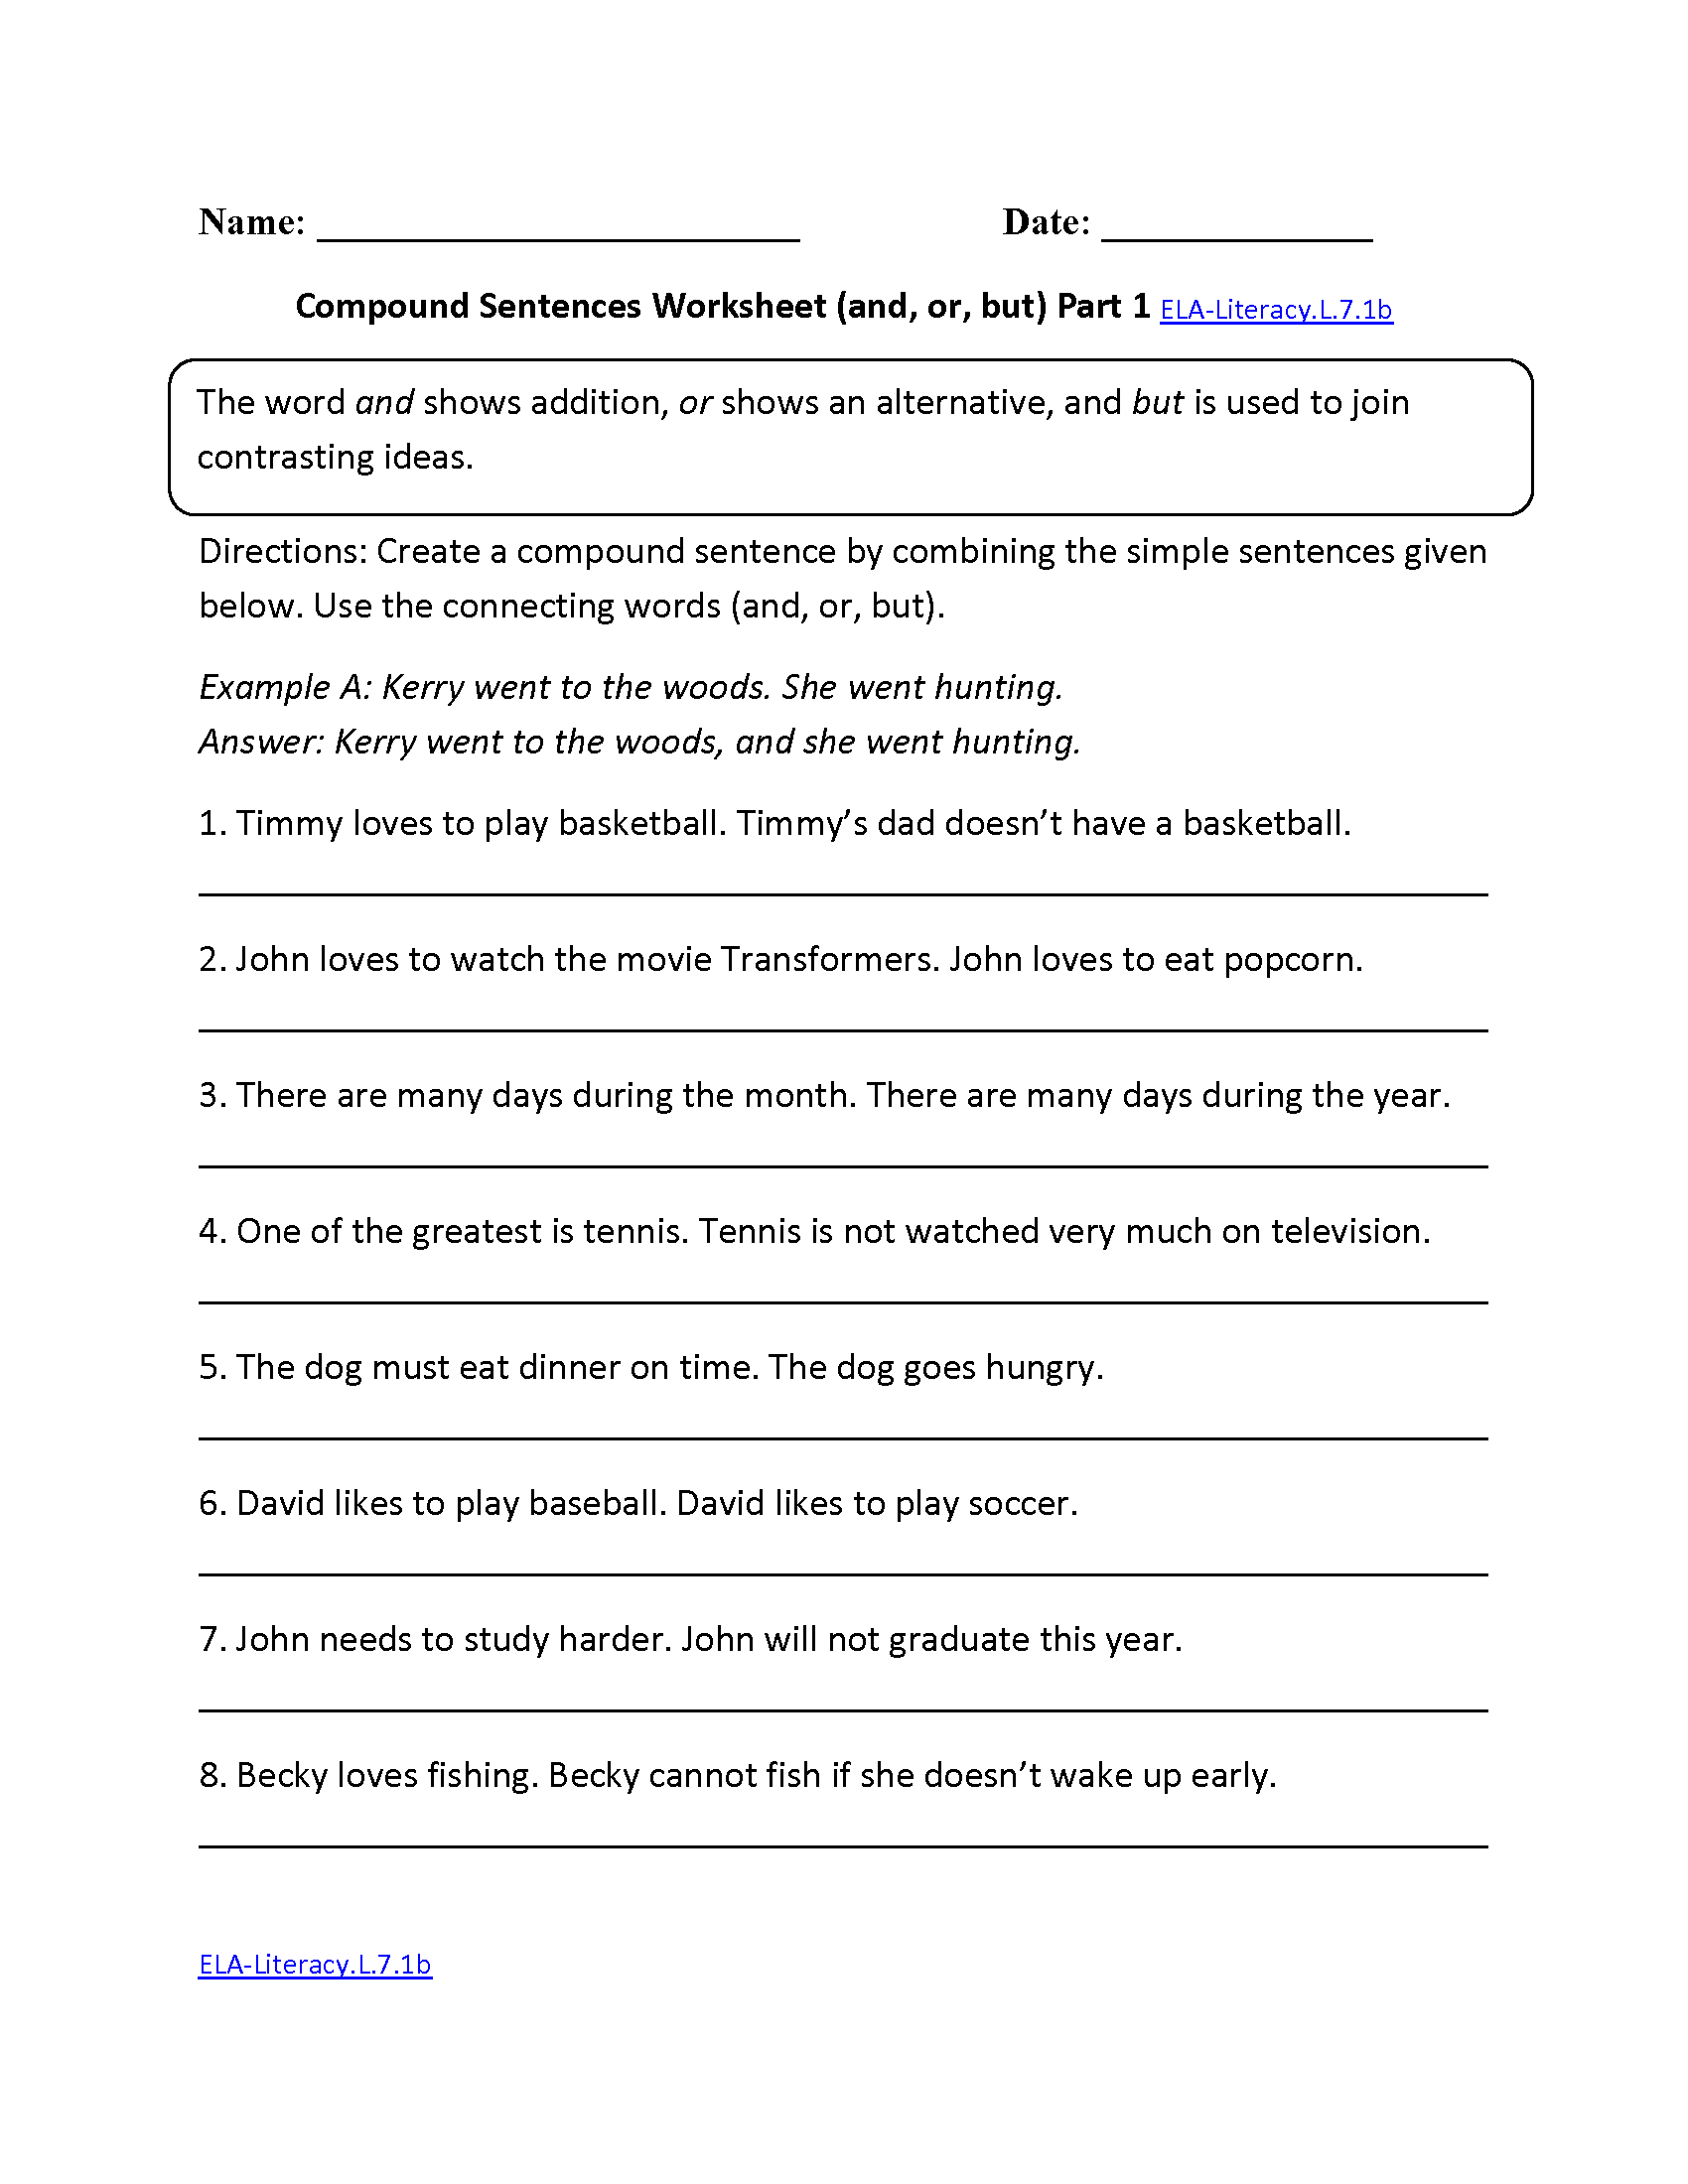 Printables Worksheets For 7th Graders 7th grade common core language worksheets compound sentences worksheet ela literacy l 7 1b worksheet